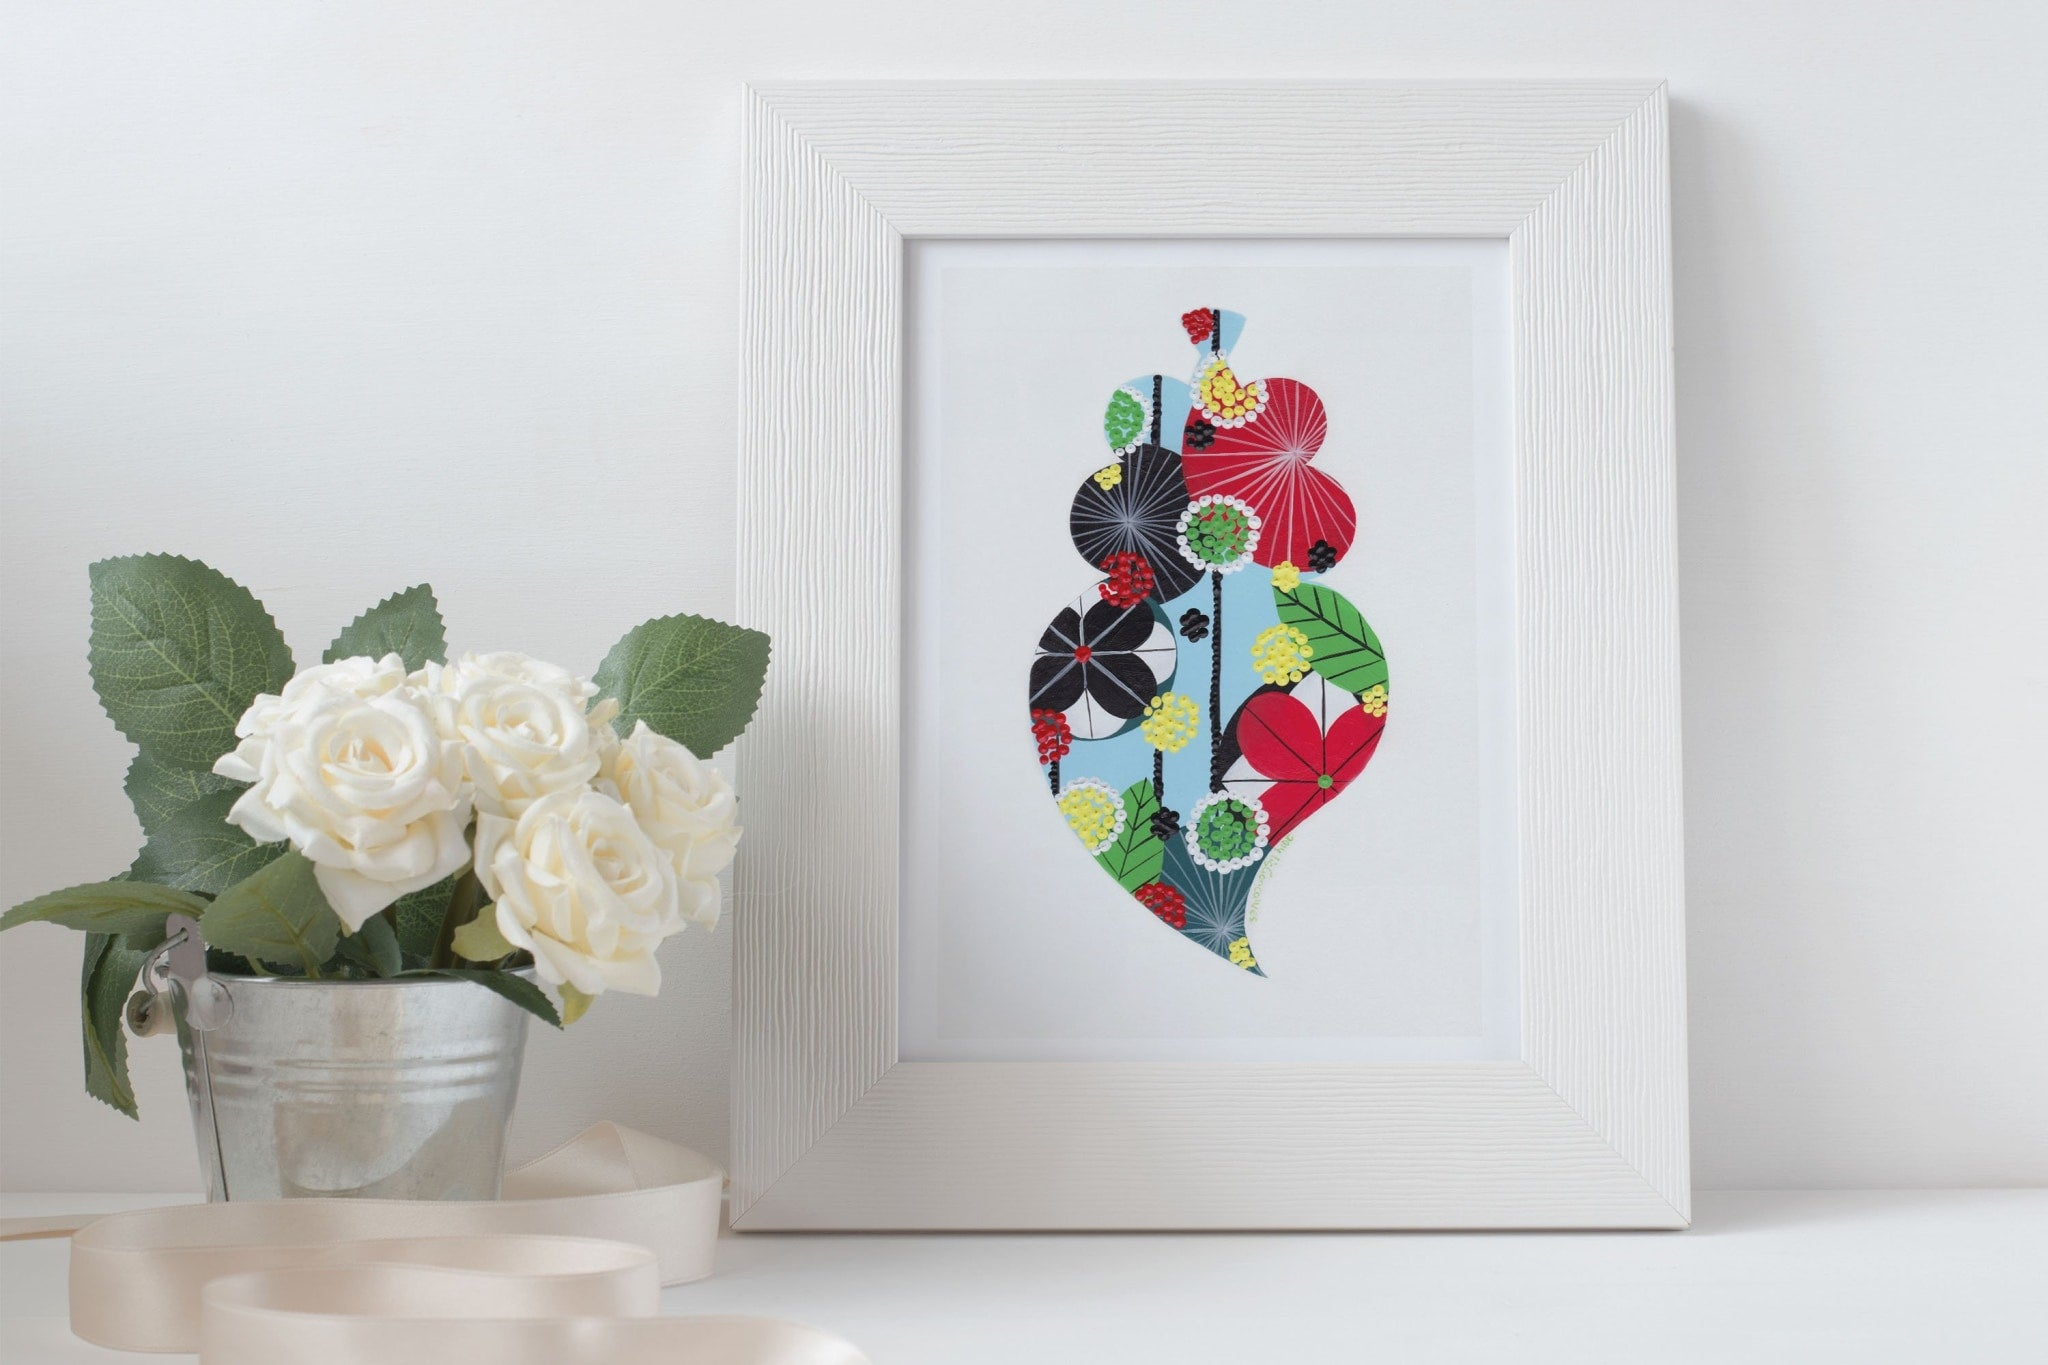 Portuguese heart giclée print in water blue